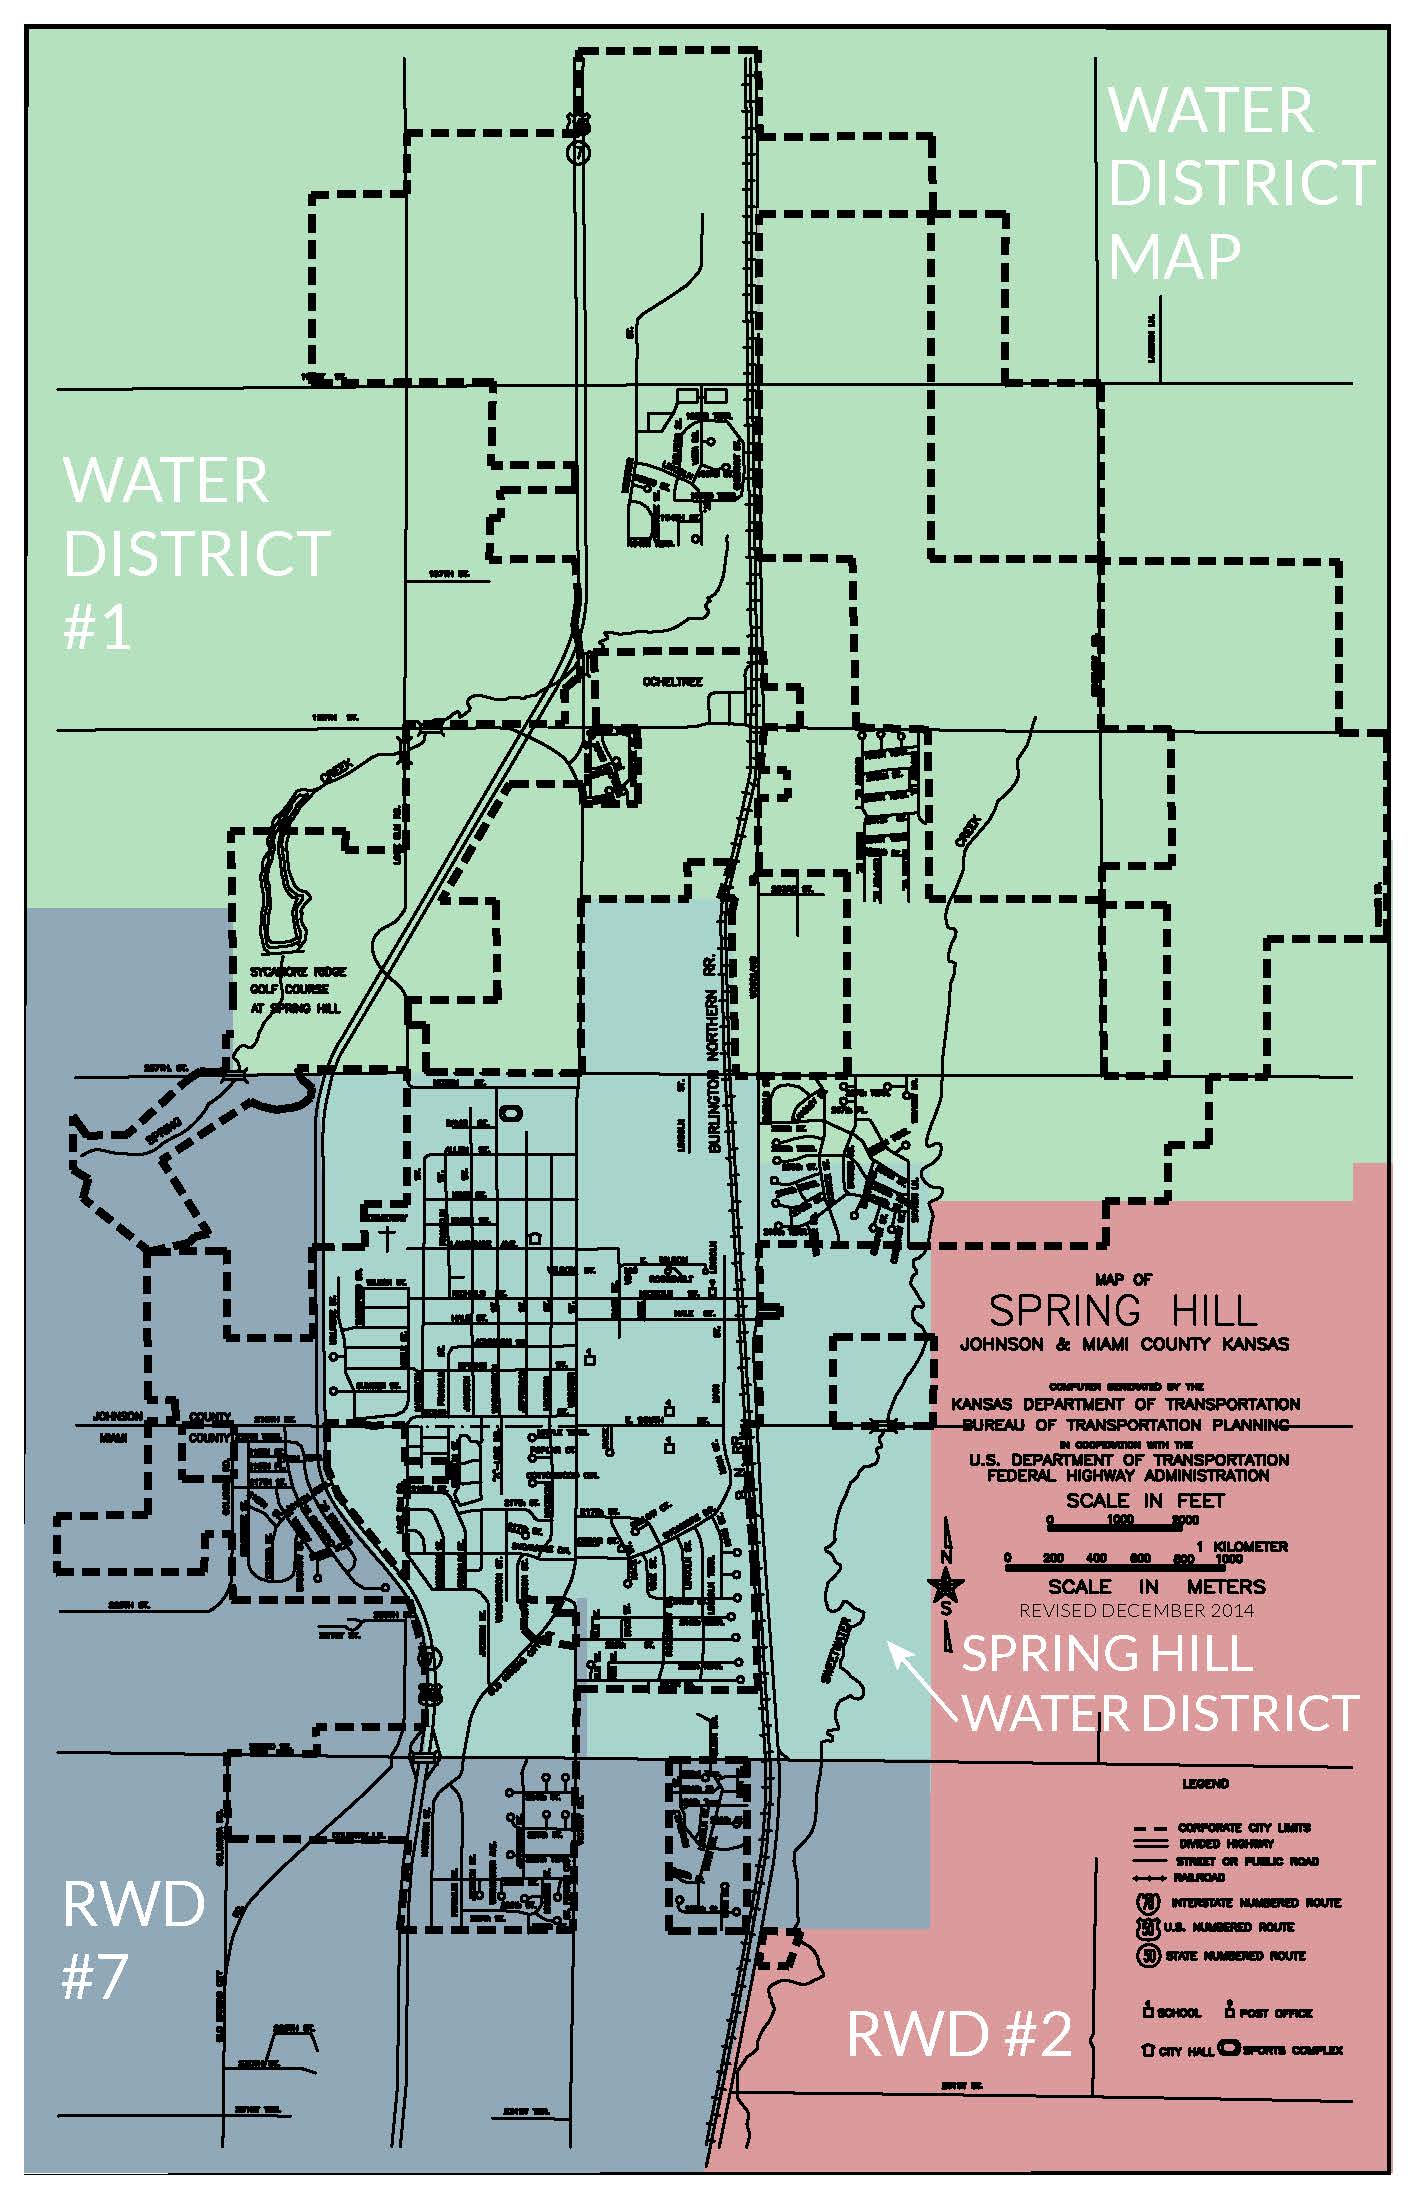 water districts map 2011.jpg